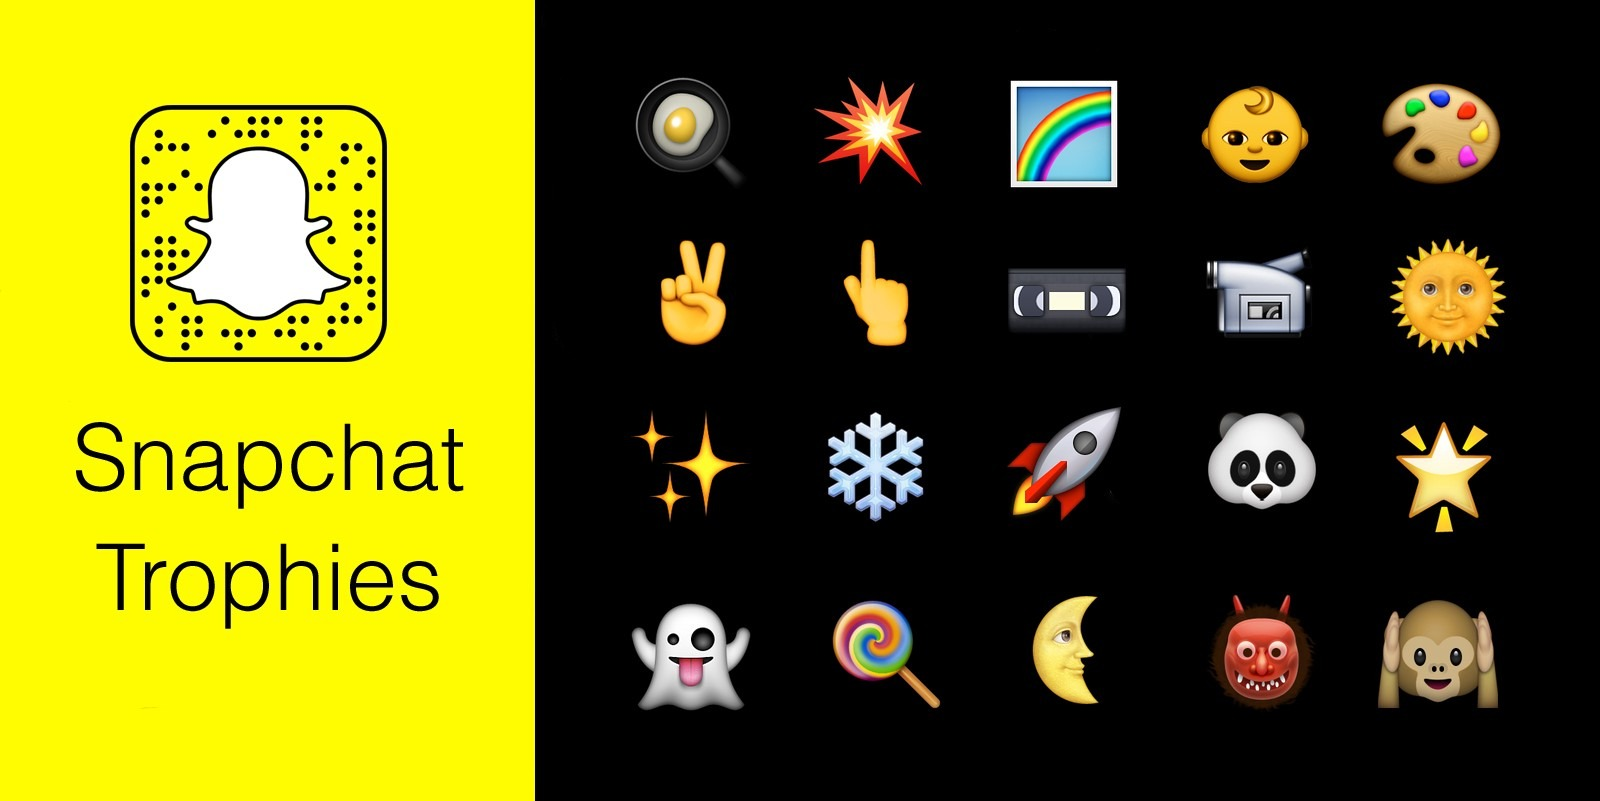 Snapchat Trophies: How To Get All Snapchat Trophies?